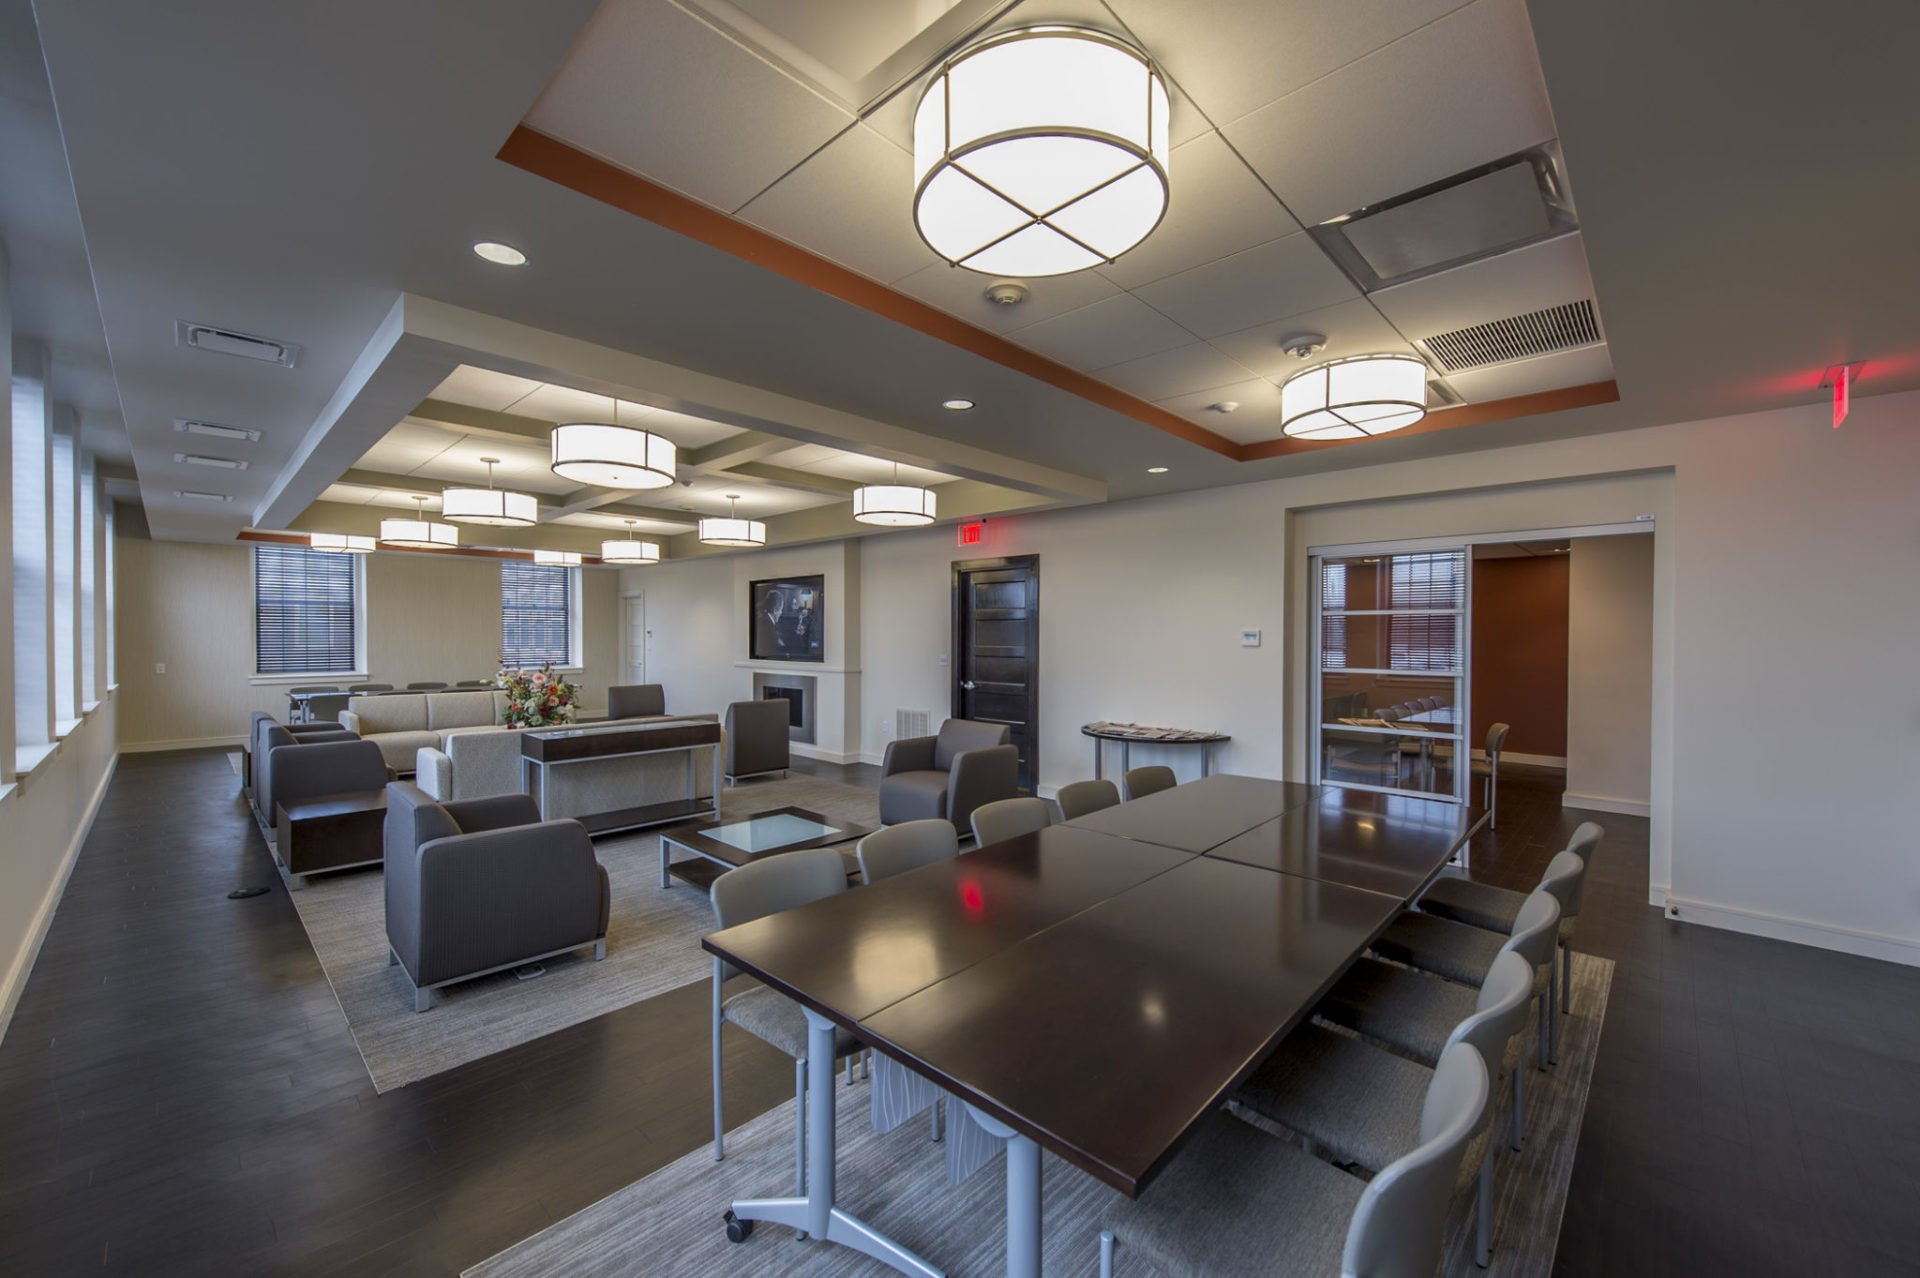 Boston College Faculty Lounge Chapman Construction